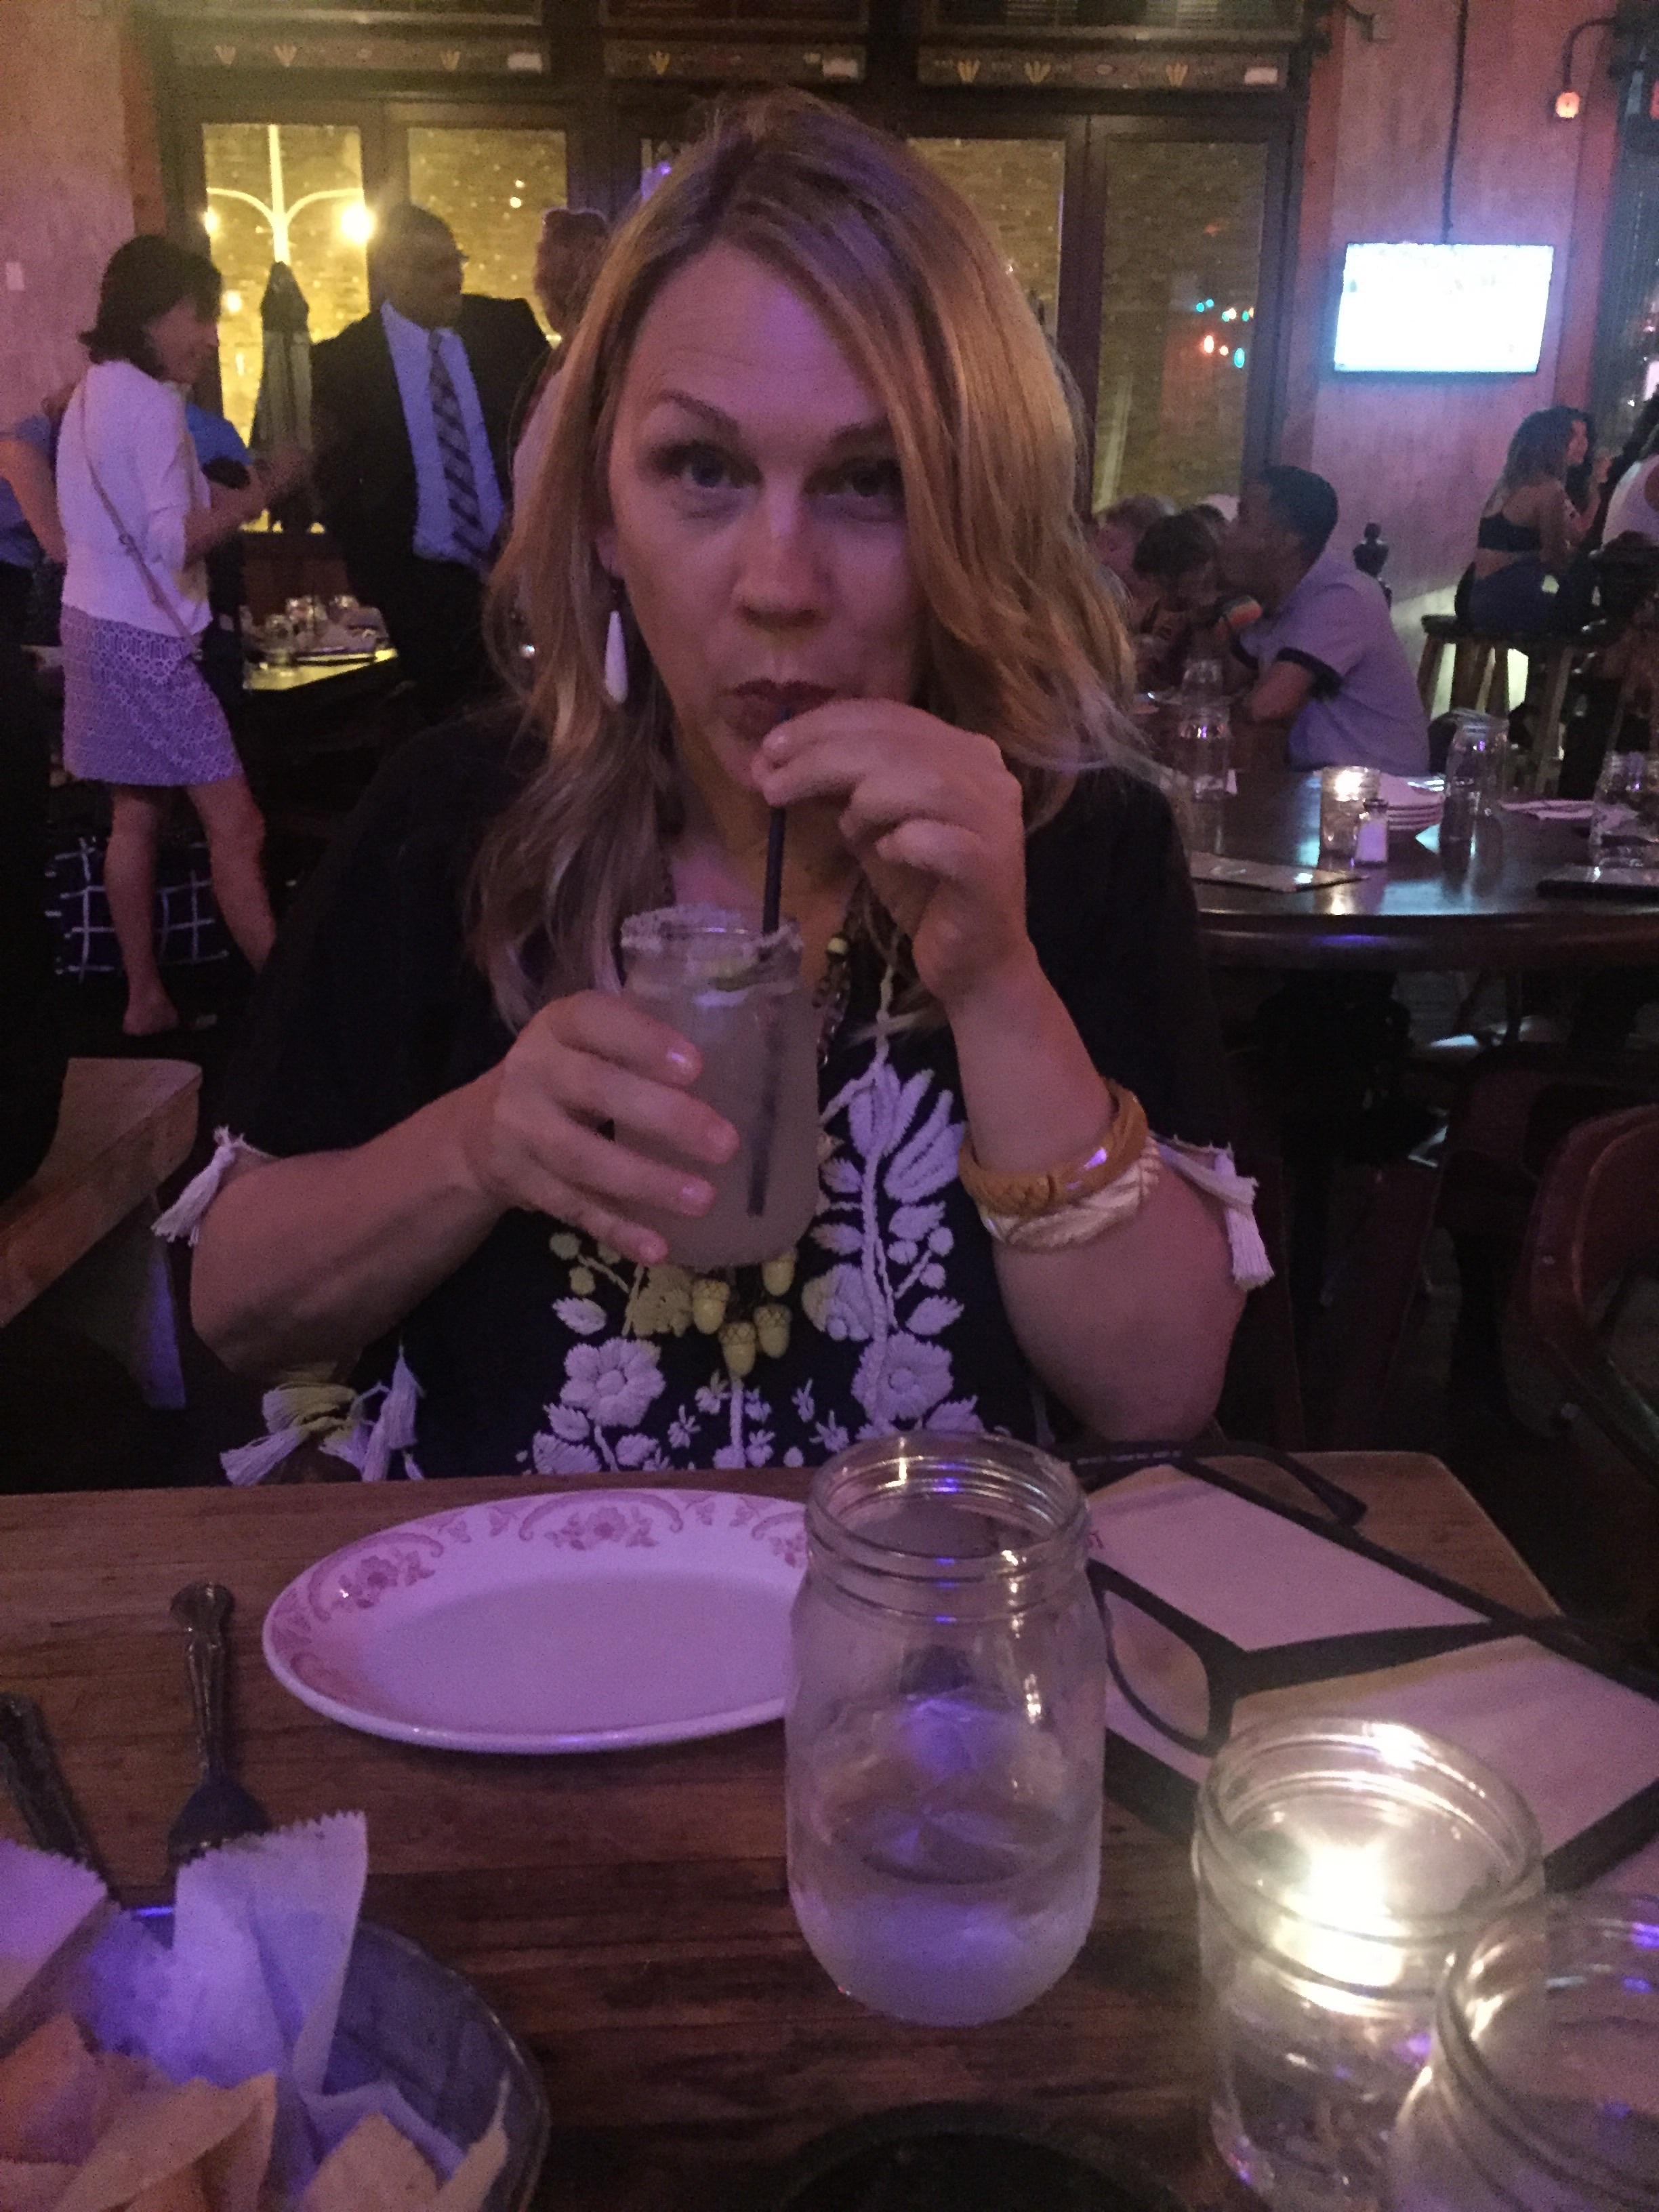 Here's me with a margarita at La Comida. Reservations required. Highly recommend!